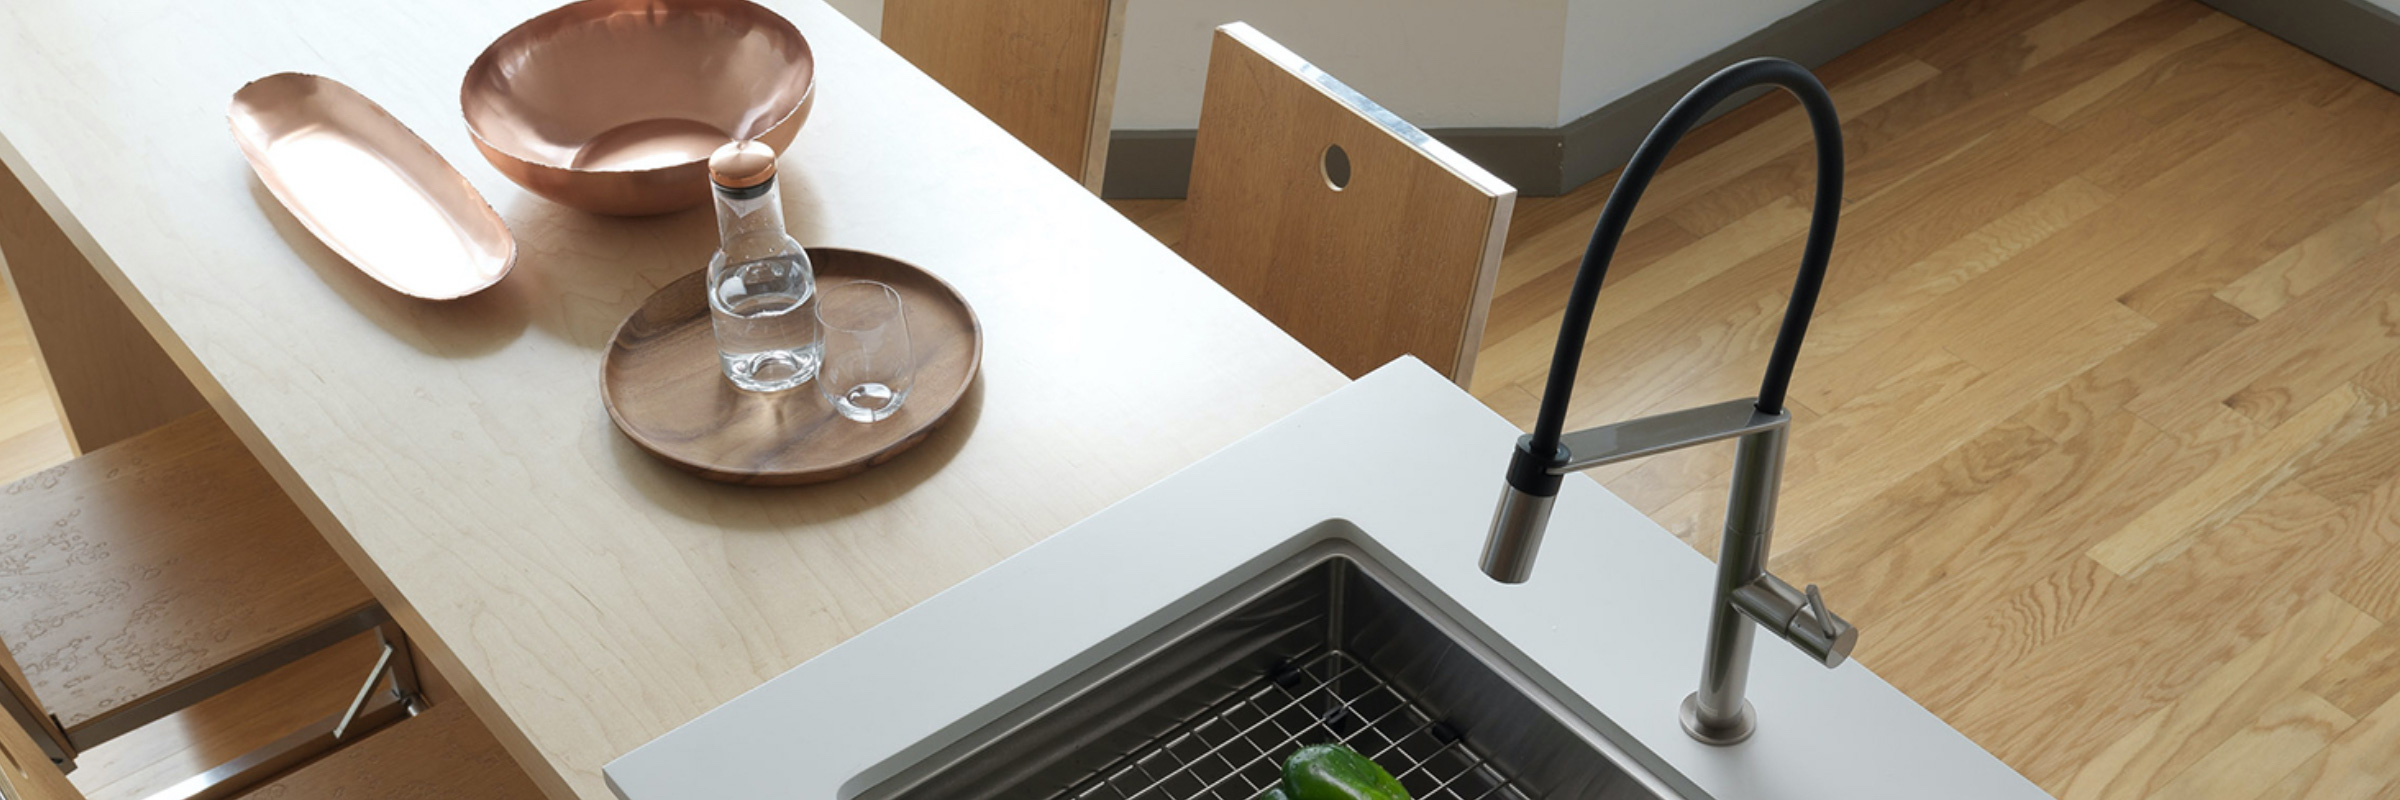 Kitchen concept with faucet and wooden countertop